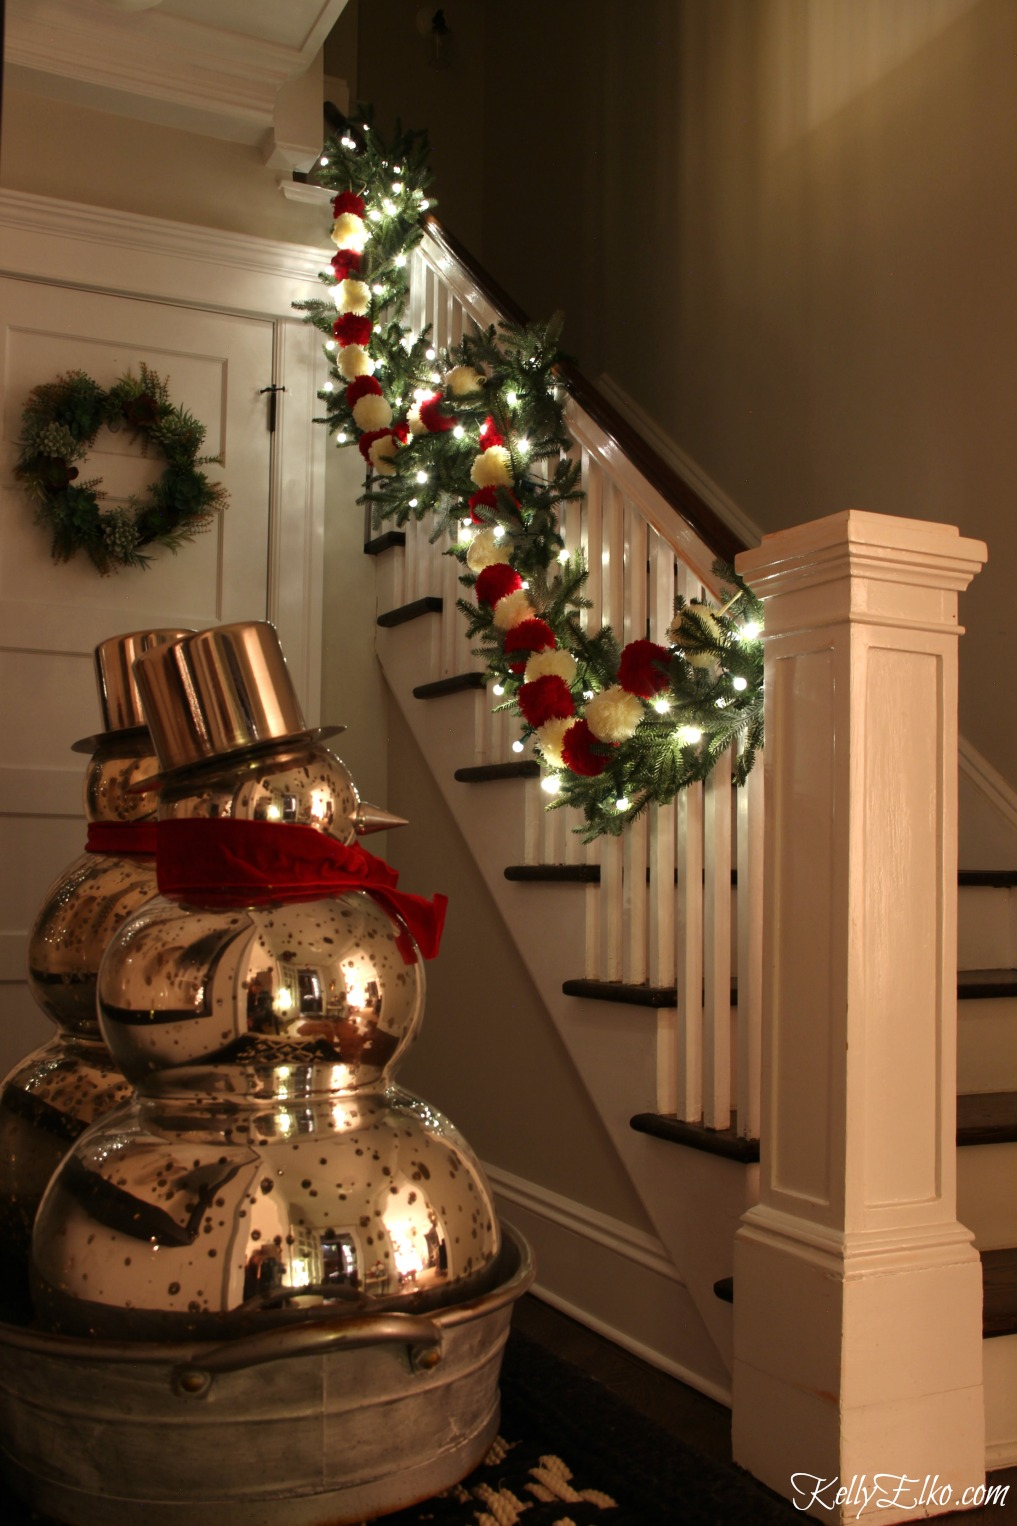 Christmas Nights Tour - see 25 of the best Christmas homes lit up at night! Love the garland on the bannister with pom poms and lights kellyelko.com #christmas #christmasdecorating #christmasdecor #christmaslights